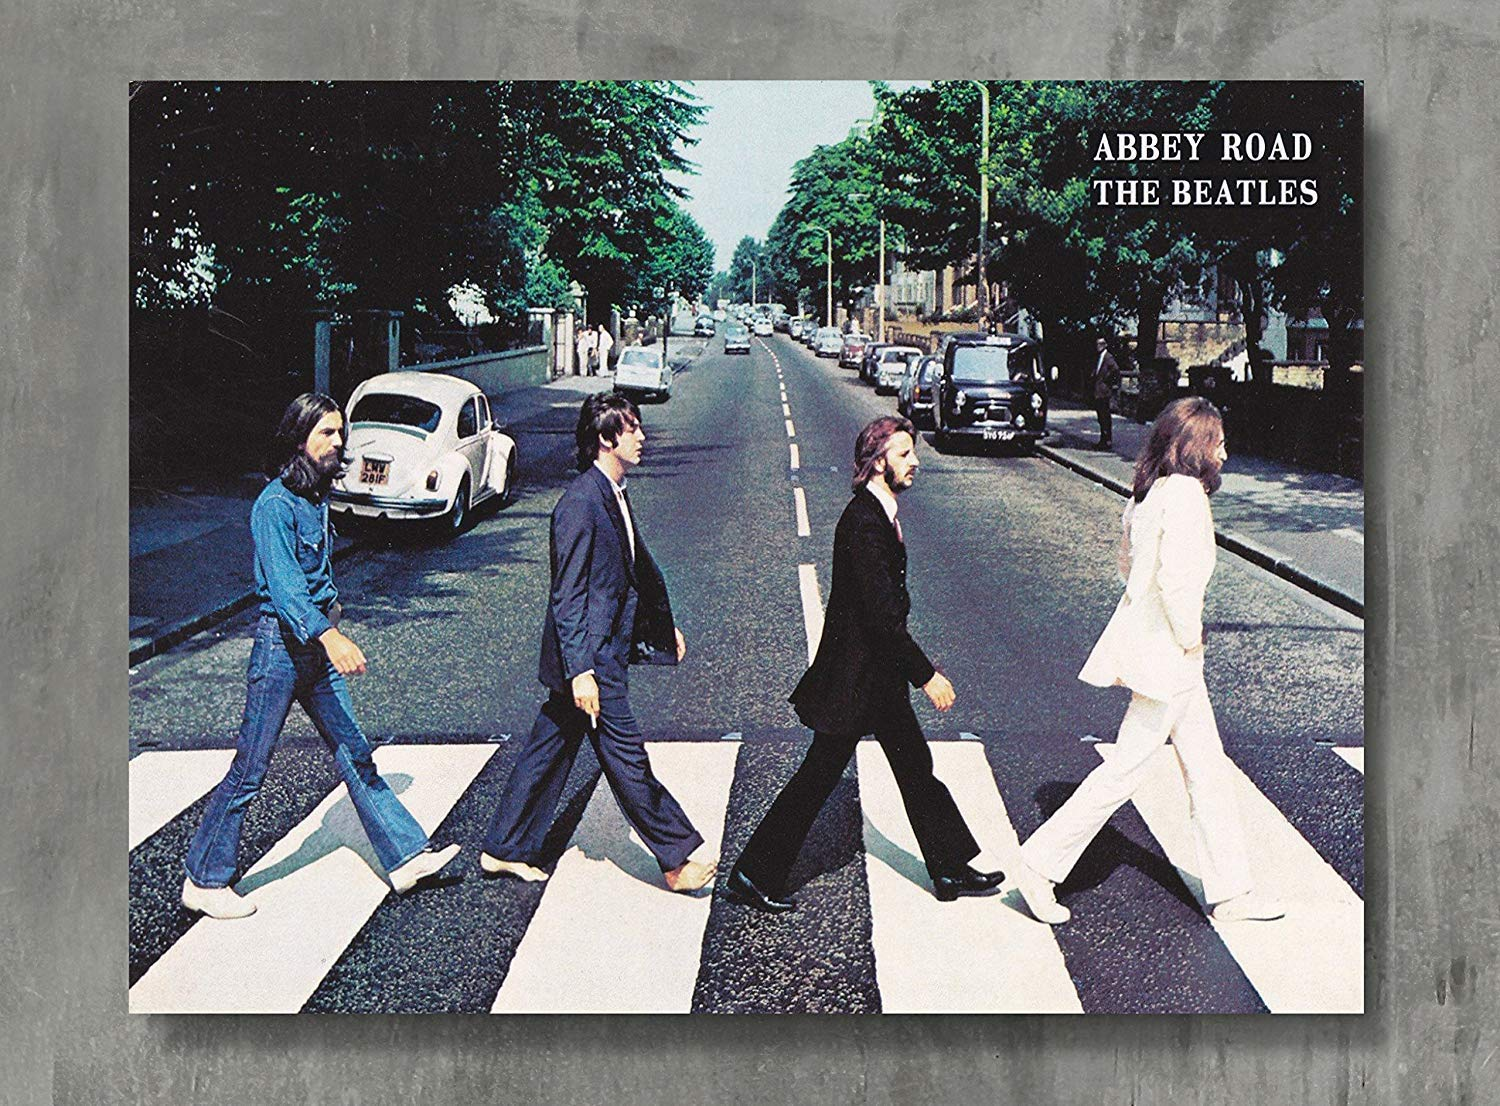 Amazon com applepie the beatles abbey road poster 24 x 18 inch the beatles abbey road posters print wall posters posters prints